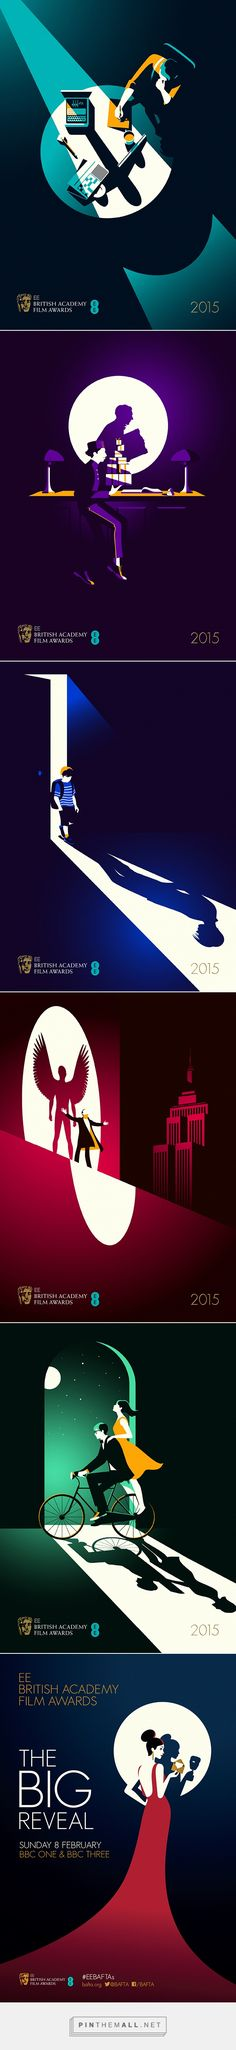 Malika Favre's terrific film noir-inspired posters for UK film's big night, the BAFTAs. - a grouped images picture - Pin Them All Flat Illustration, Graphic Design Illustration, Digital Illustration, Graphic Art, Dm Poster, Poster Design, Design Graphique, Art Graphique, Plakat Design